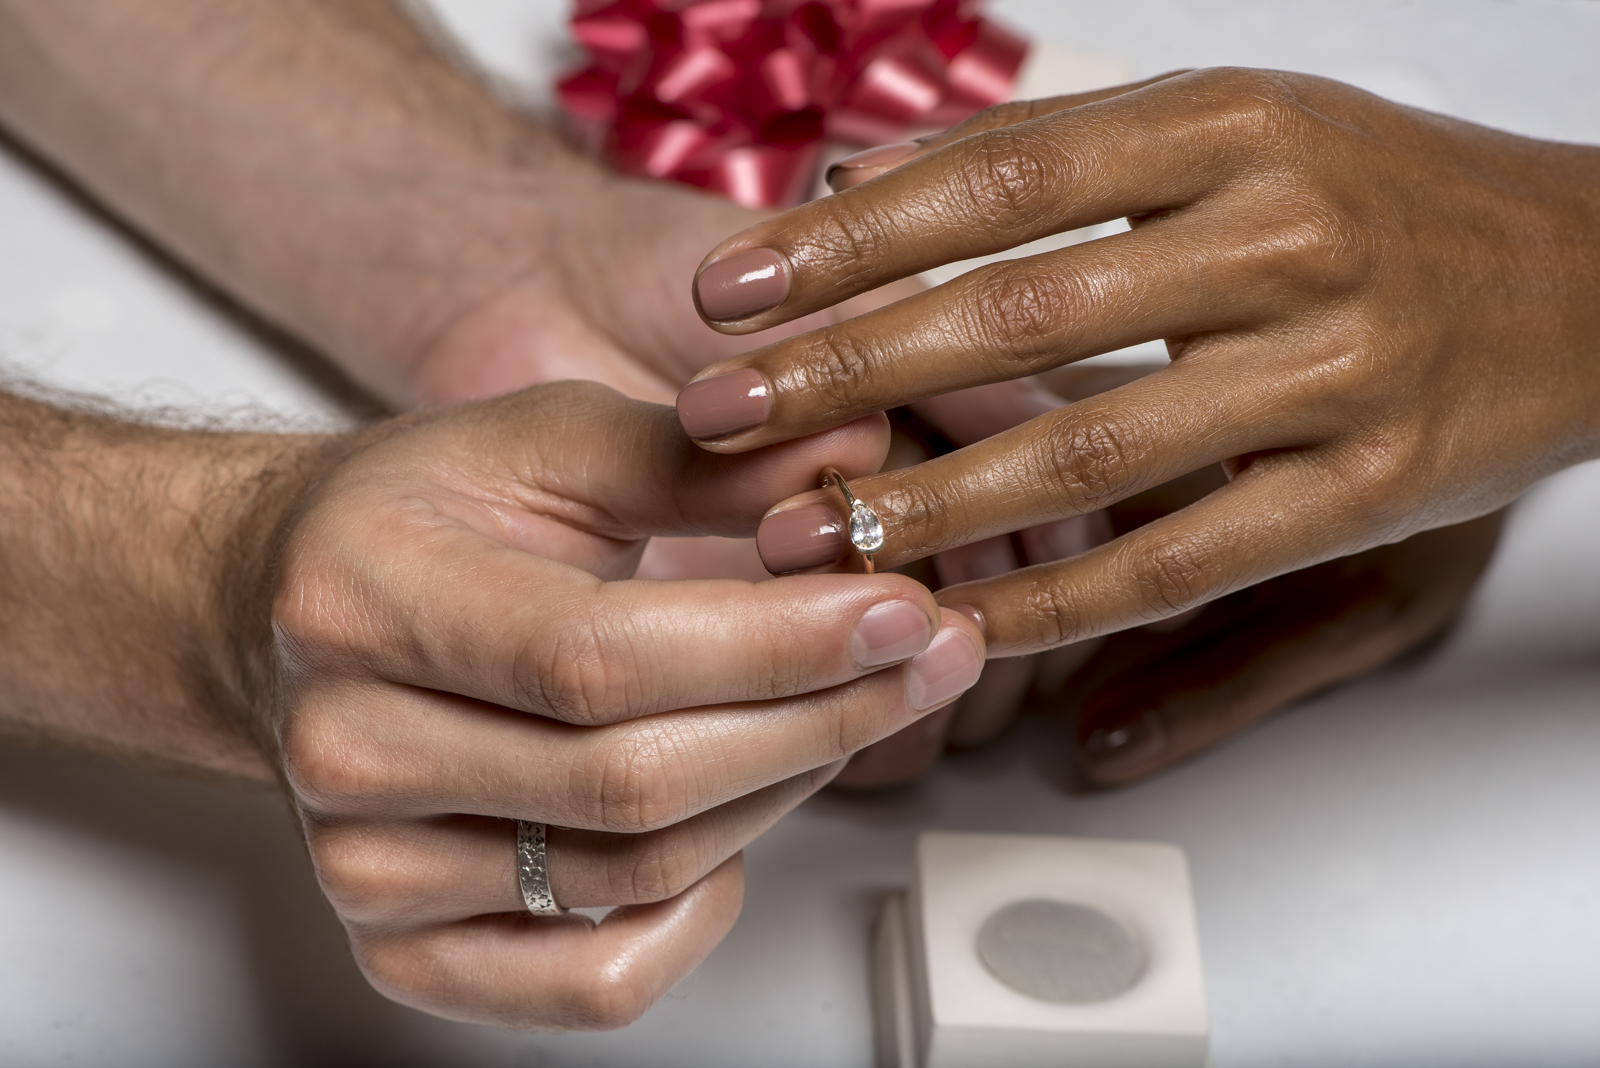 Photograph of a man placing an engagement ring on a woman's finger